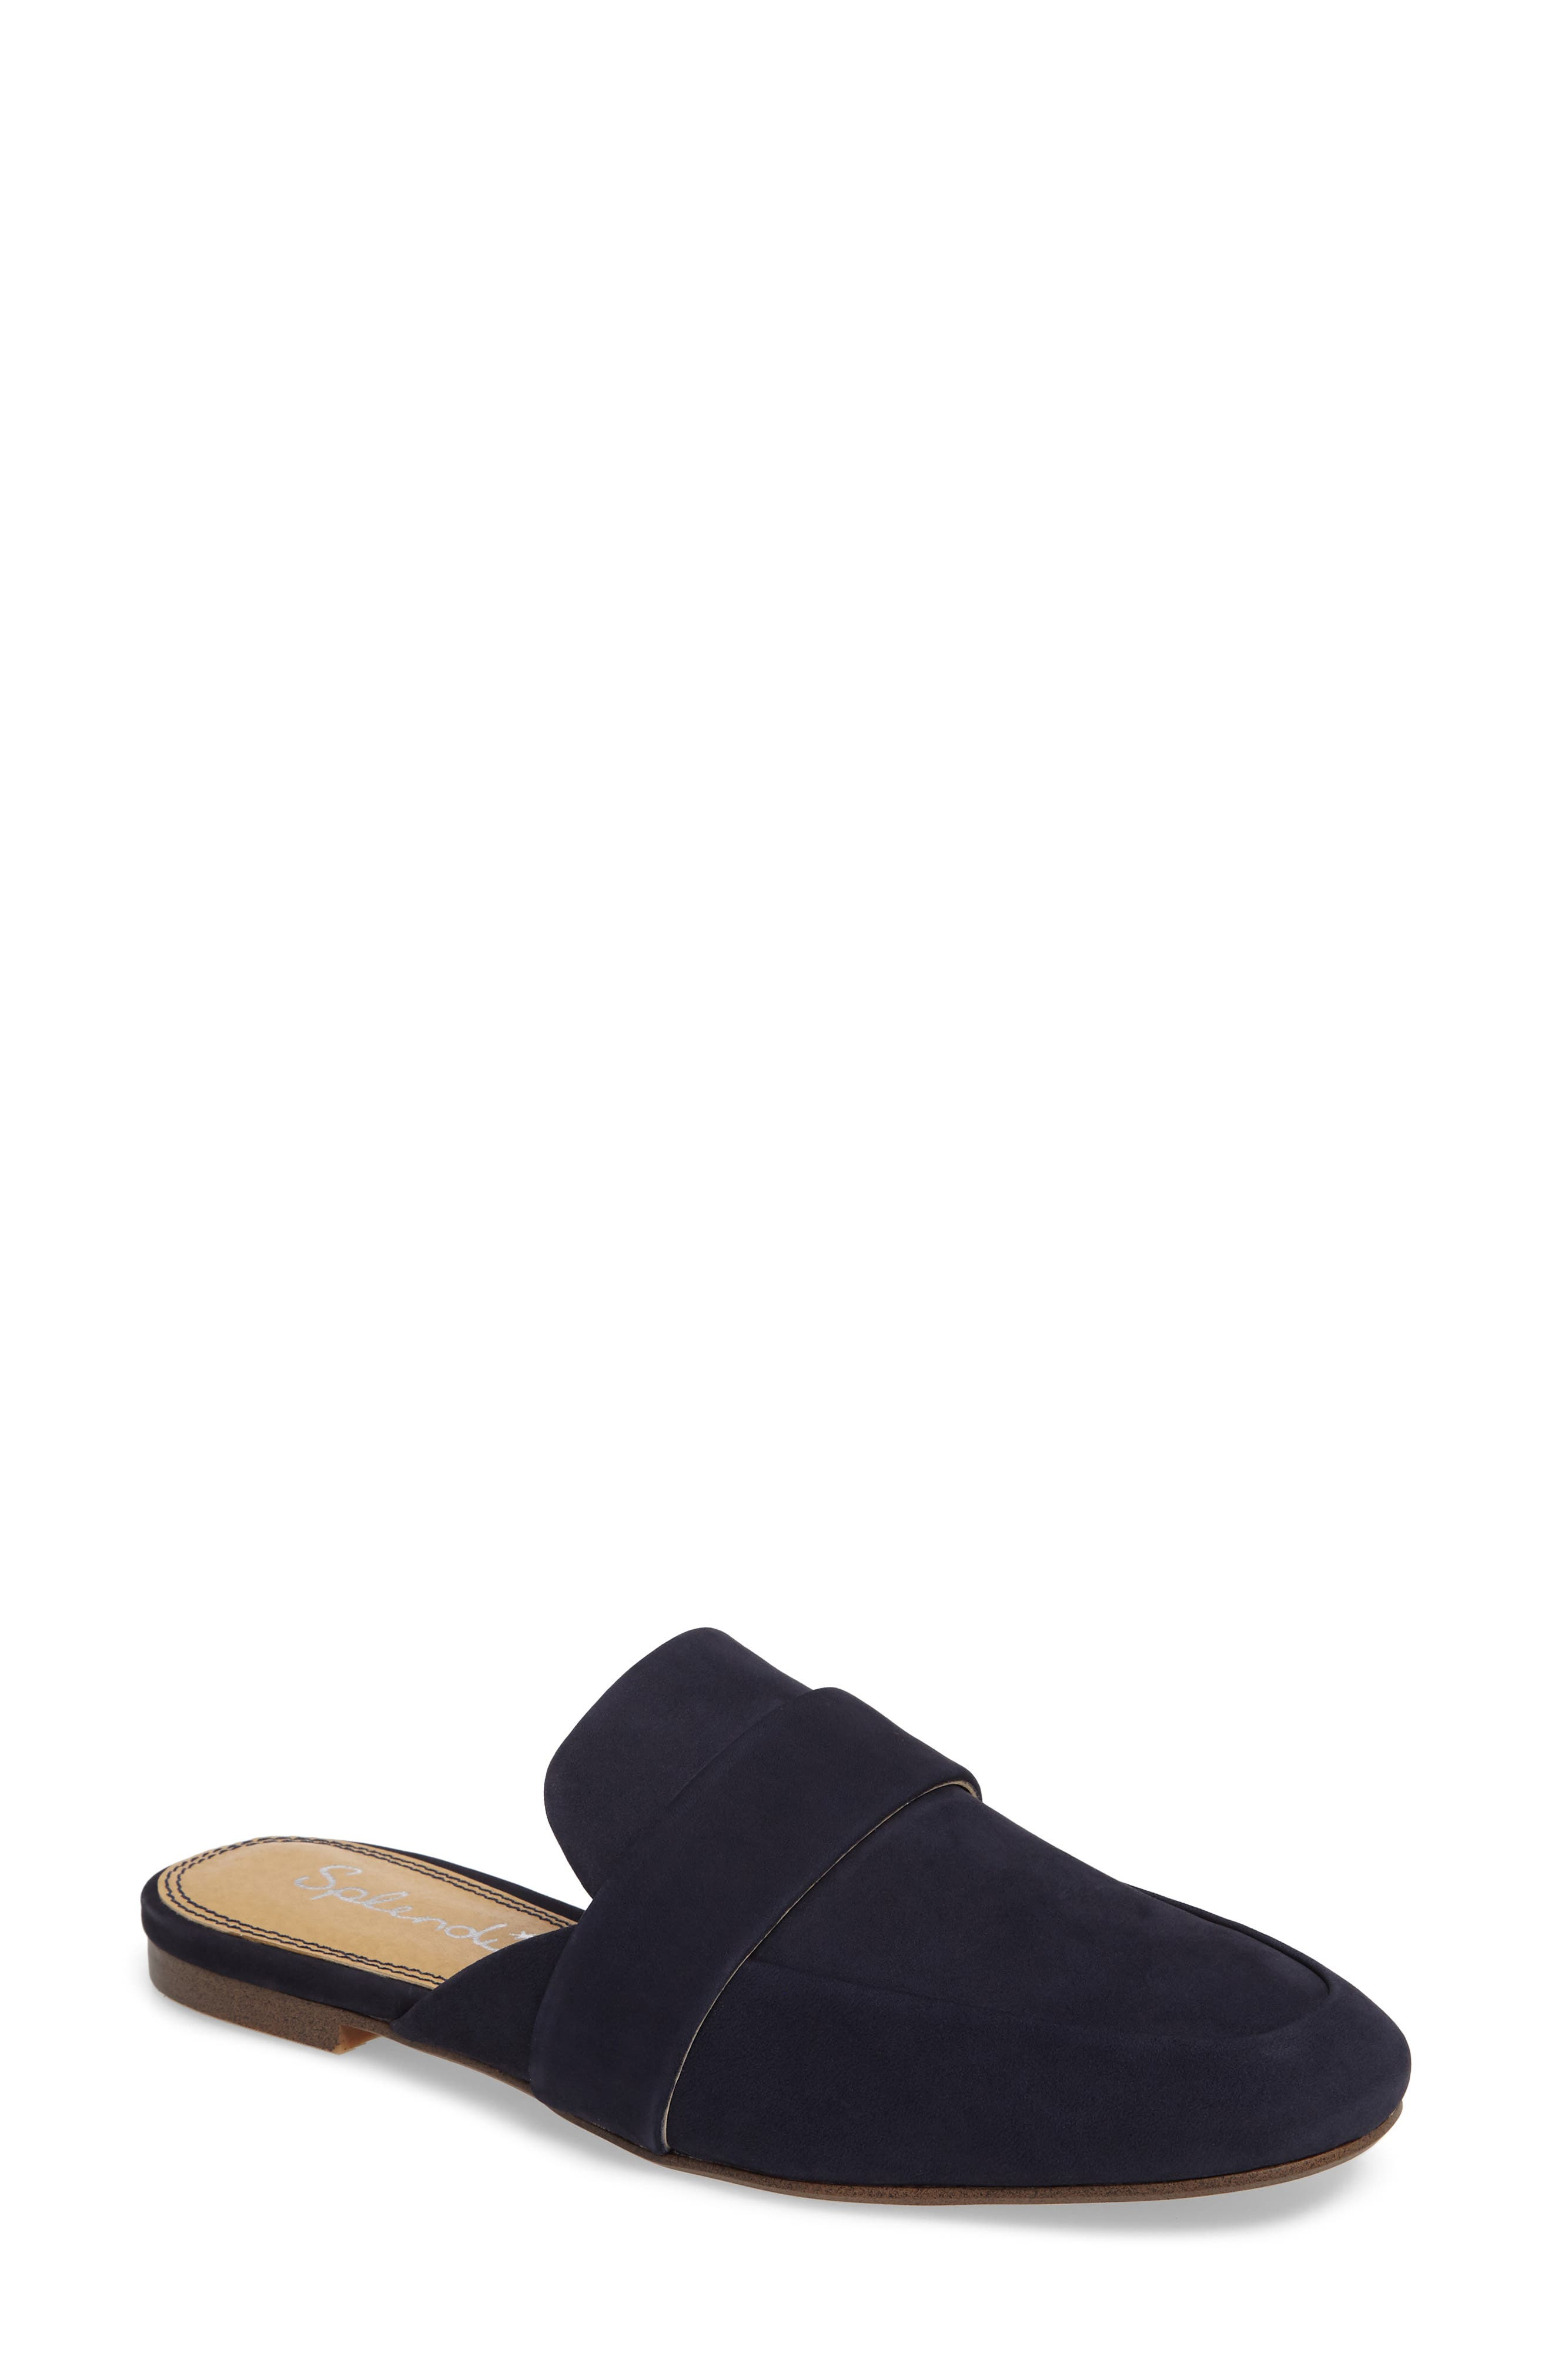 Splendid Delroy Slide Mule (Women)